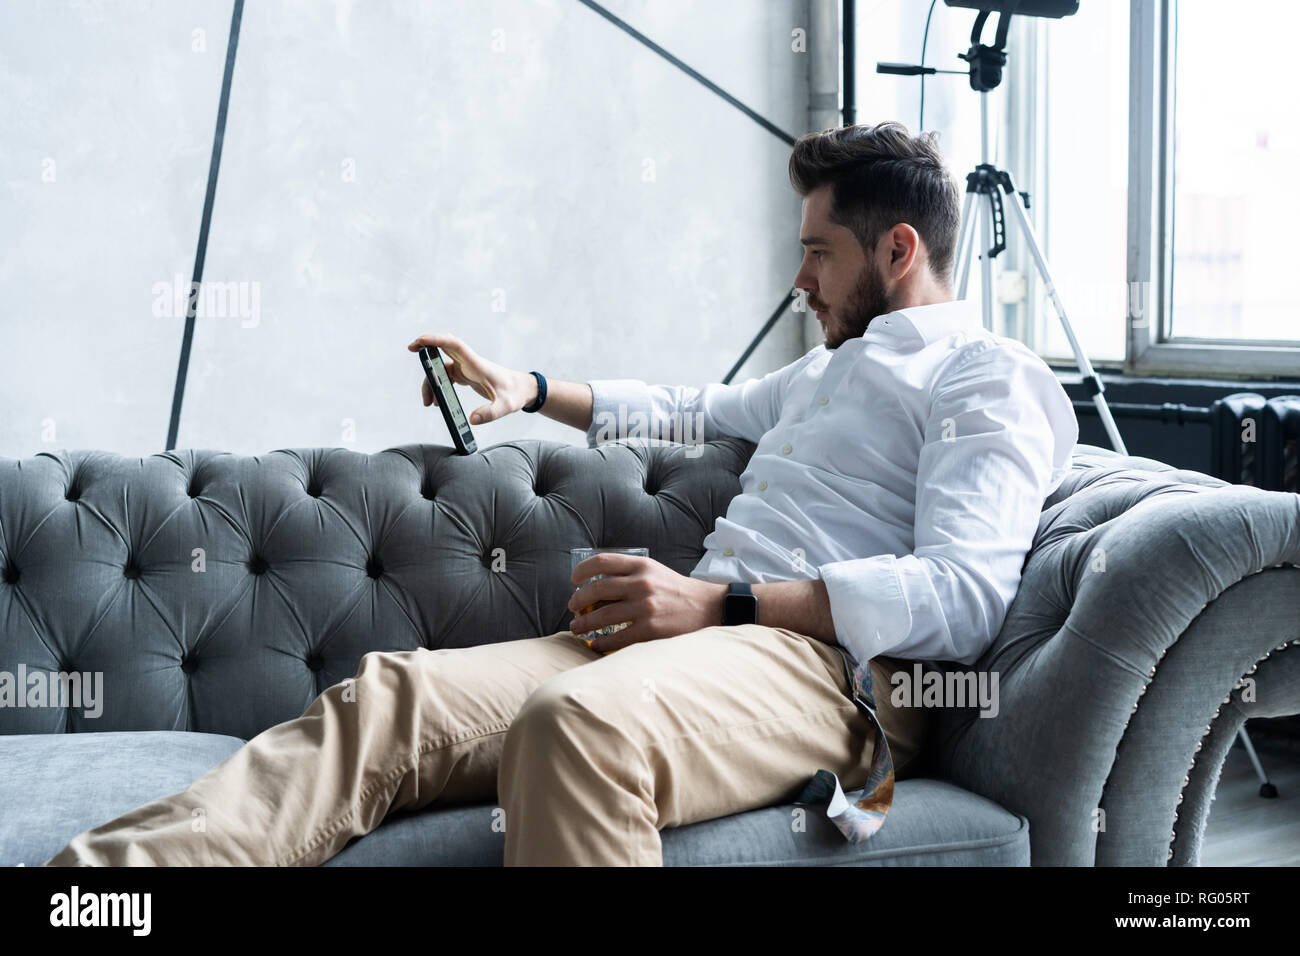 focused handsome man in formal wear sitting on gray sofa and using smartphone. - Stock Image